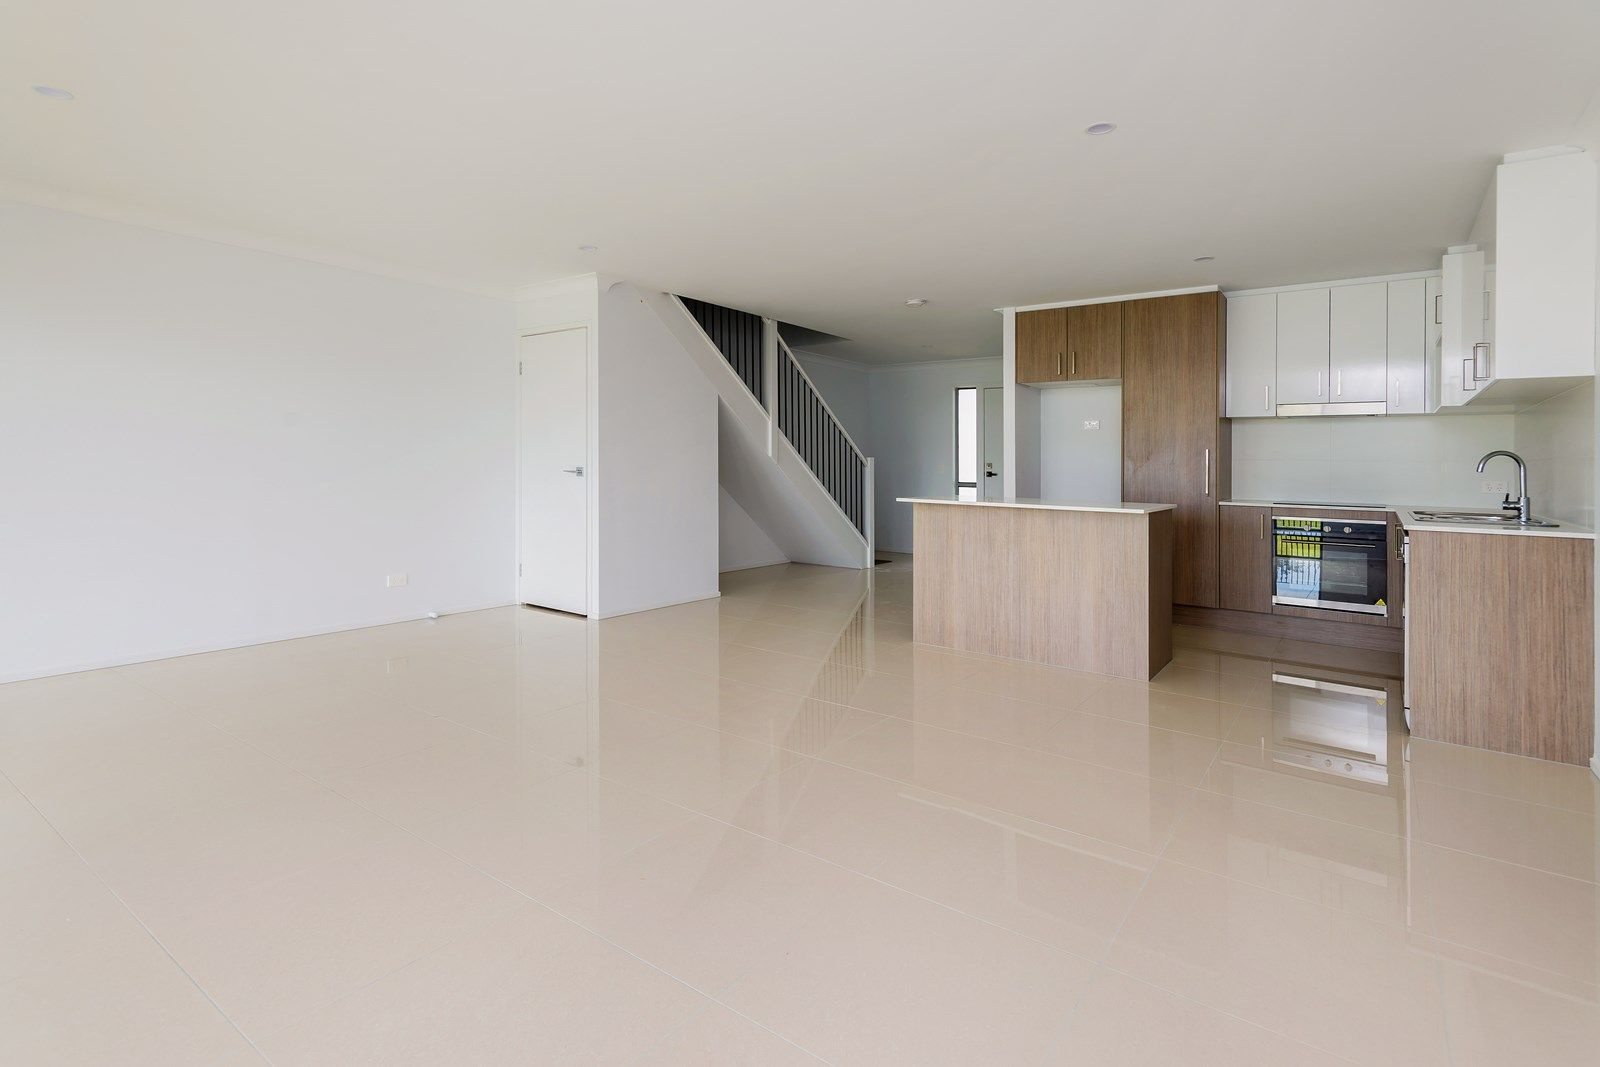 4/16 Bottle Brush Court, Coomera QLD 4209, Image 2